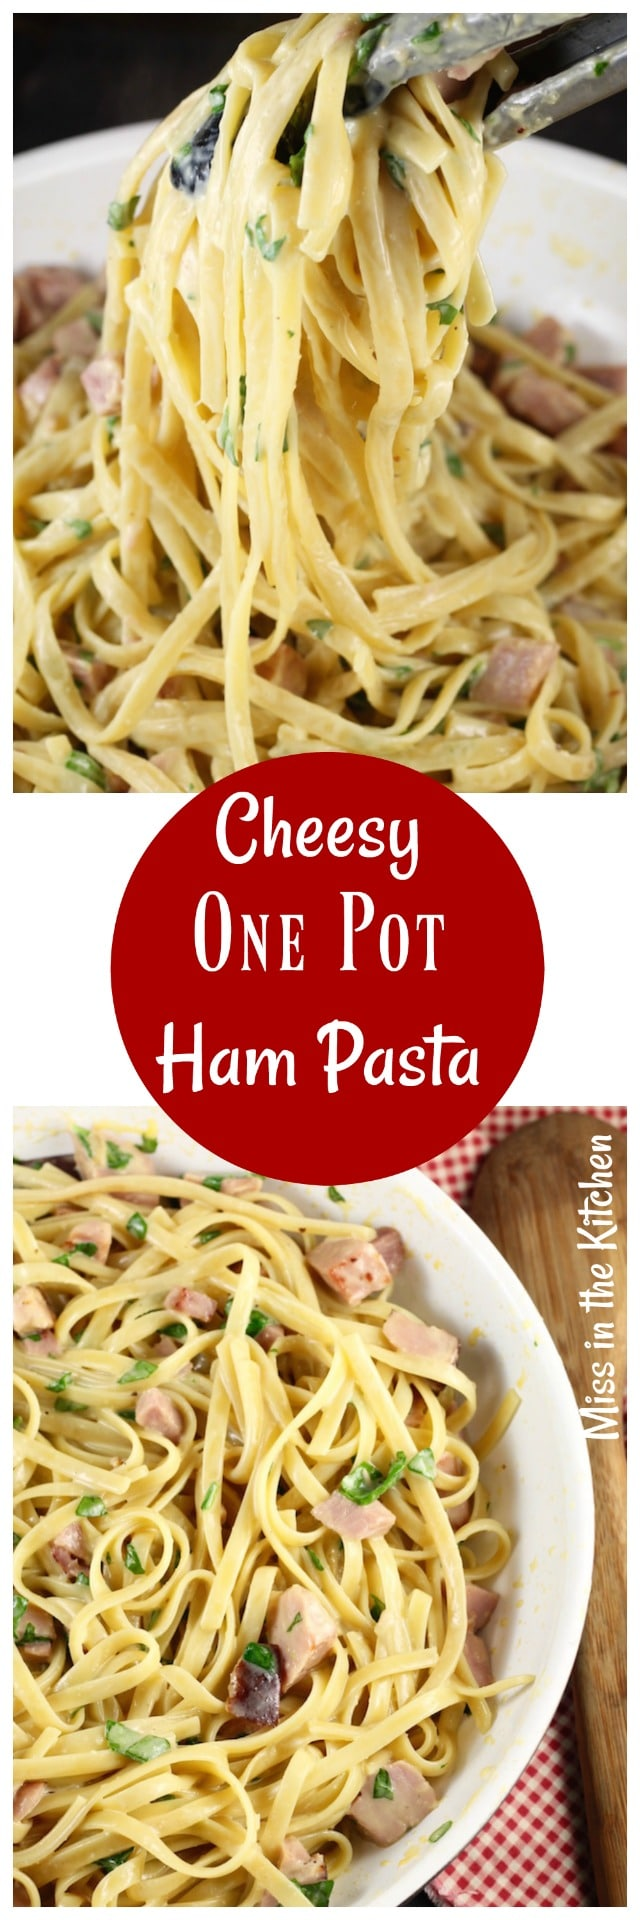 One Pot Cheesy Ham Pasta Dinner Recipe from MissintheKitchen.com